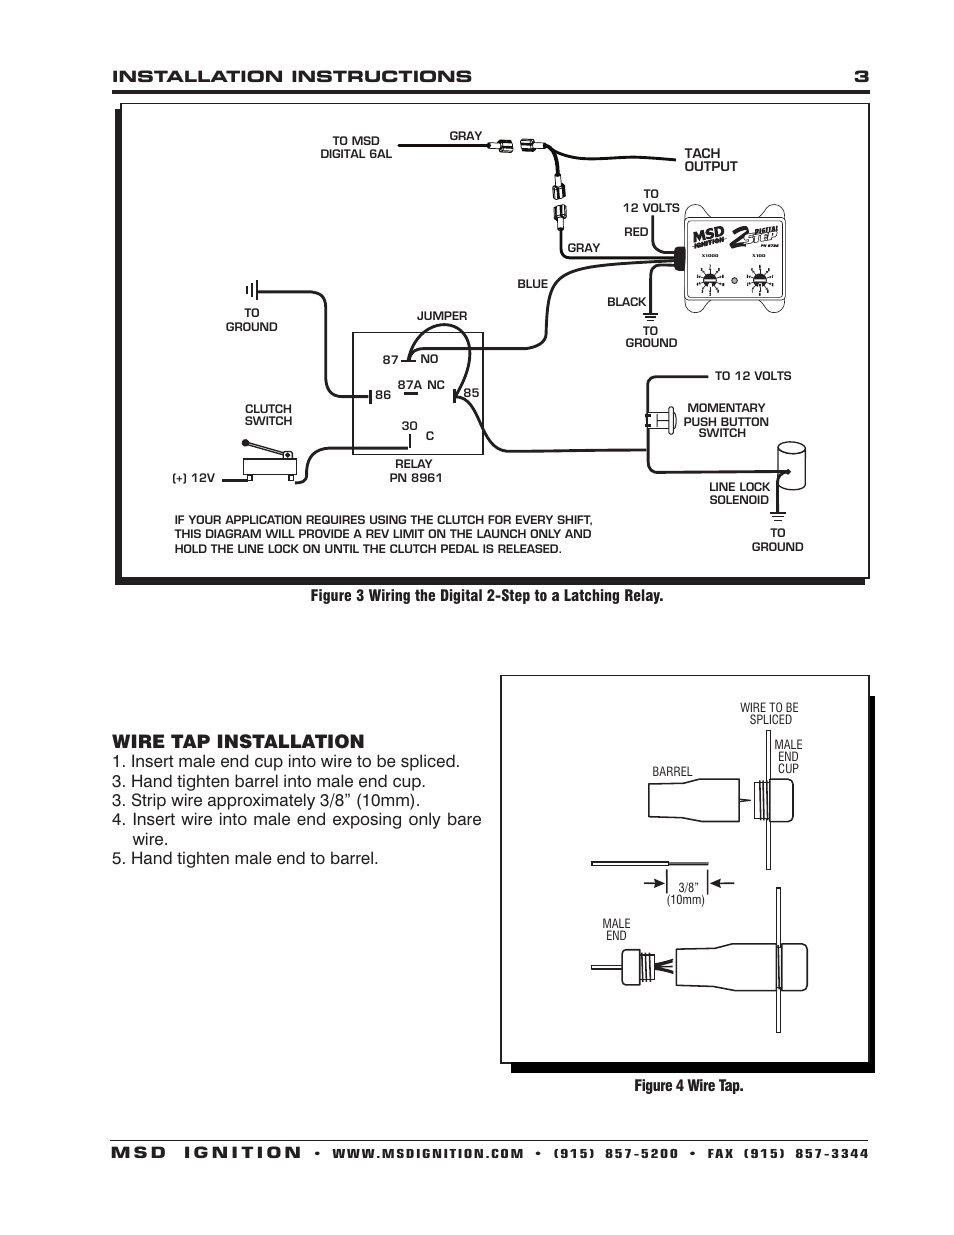 Drag Specialties 2211 0103 Tachometer Wiring Diagram 52 Sunpro Tach Schematic For Mazda B2200 On Download Wirning Diagrams Msd 8732 2 Step Rev Control Digital 6al Installation Page3resize